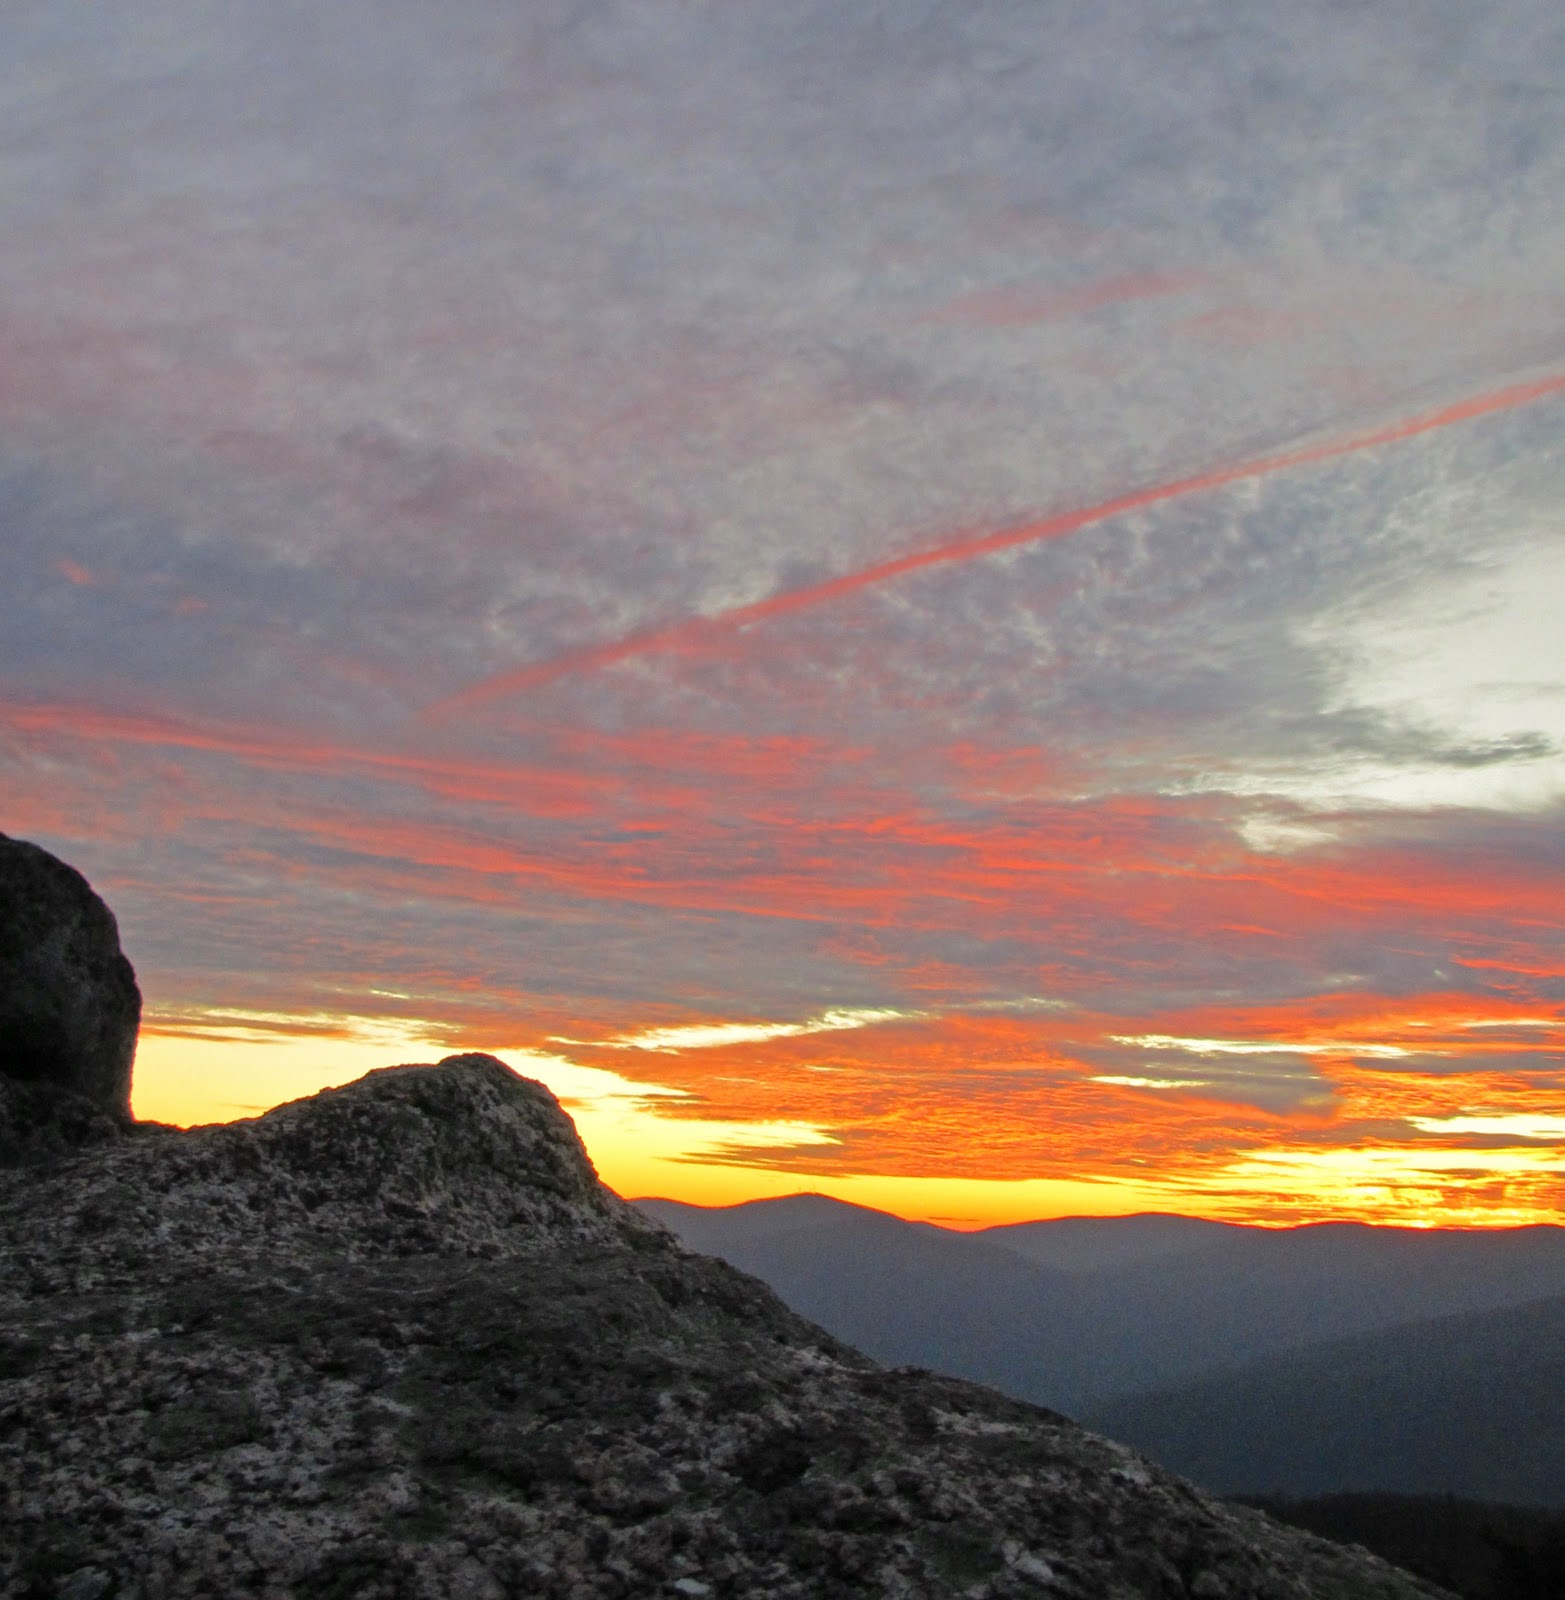 Old Rag Mountain Closed: Old Rag Mountain Hikes/Patrols By RSL: Dec 3&4 Old Rag